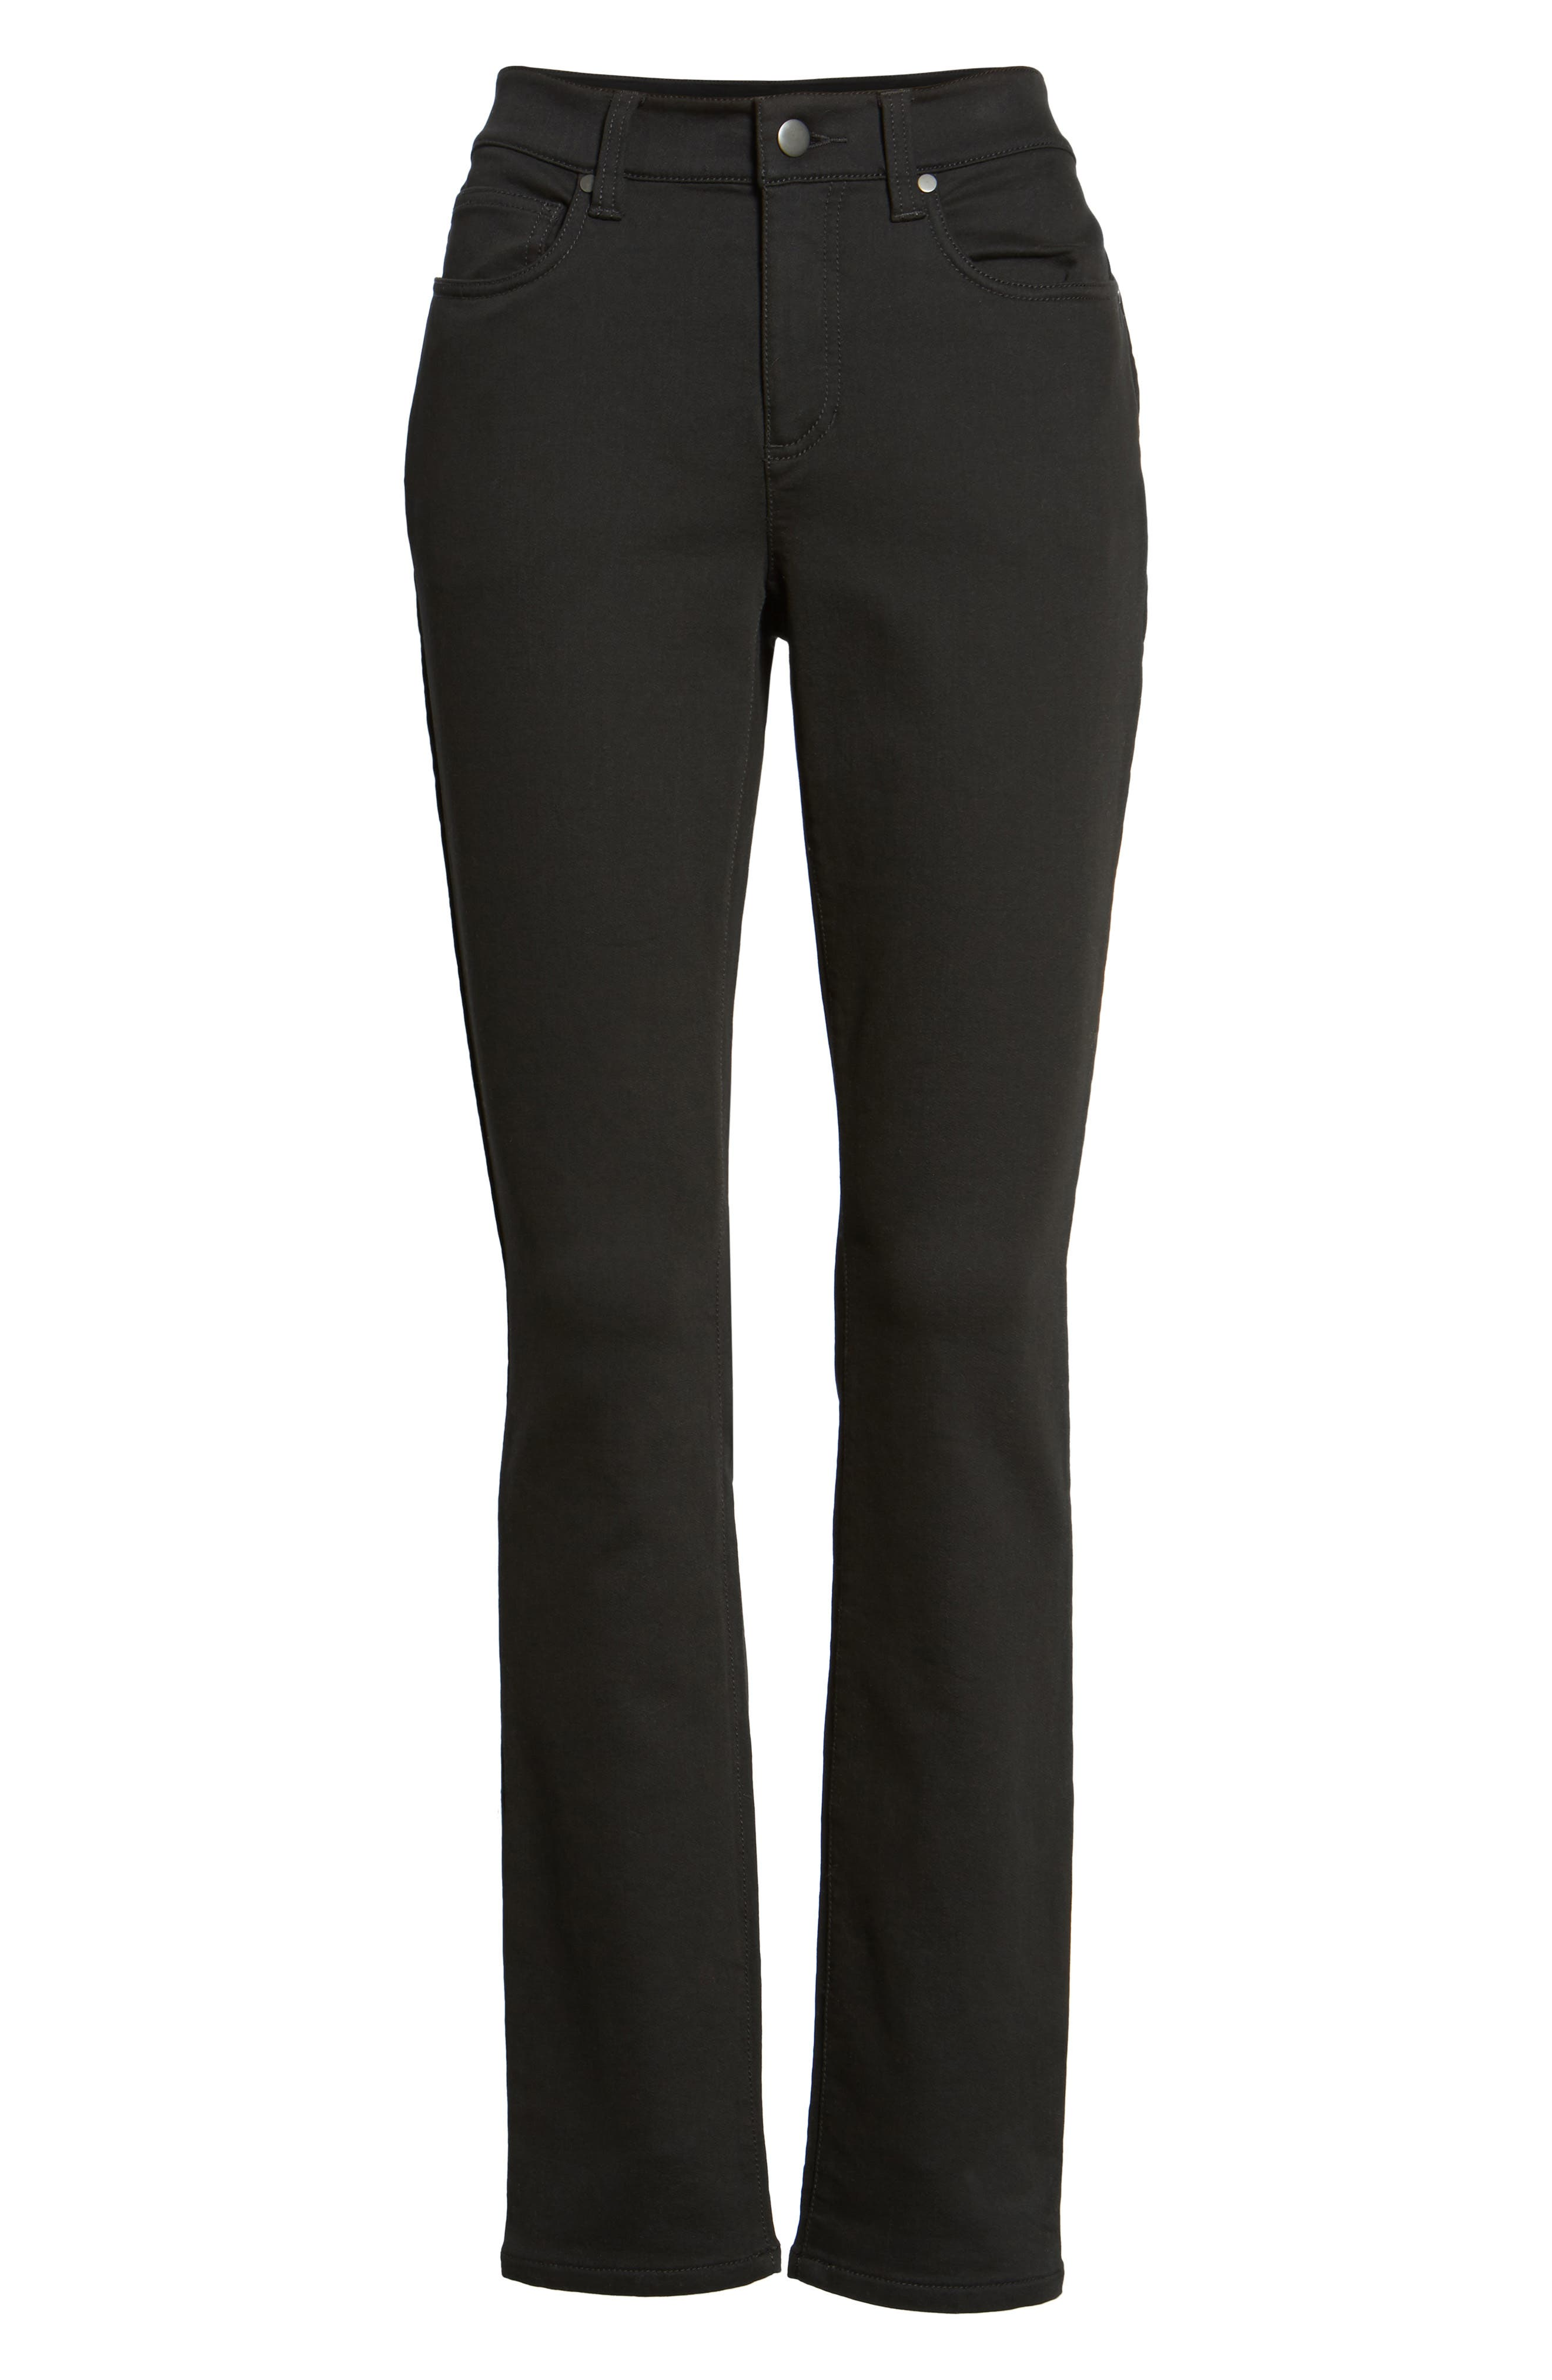 Stretch Organic Cotton Skinny Jeans,                             Alternate thumbnail 6, color,                             001